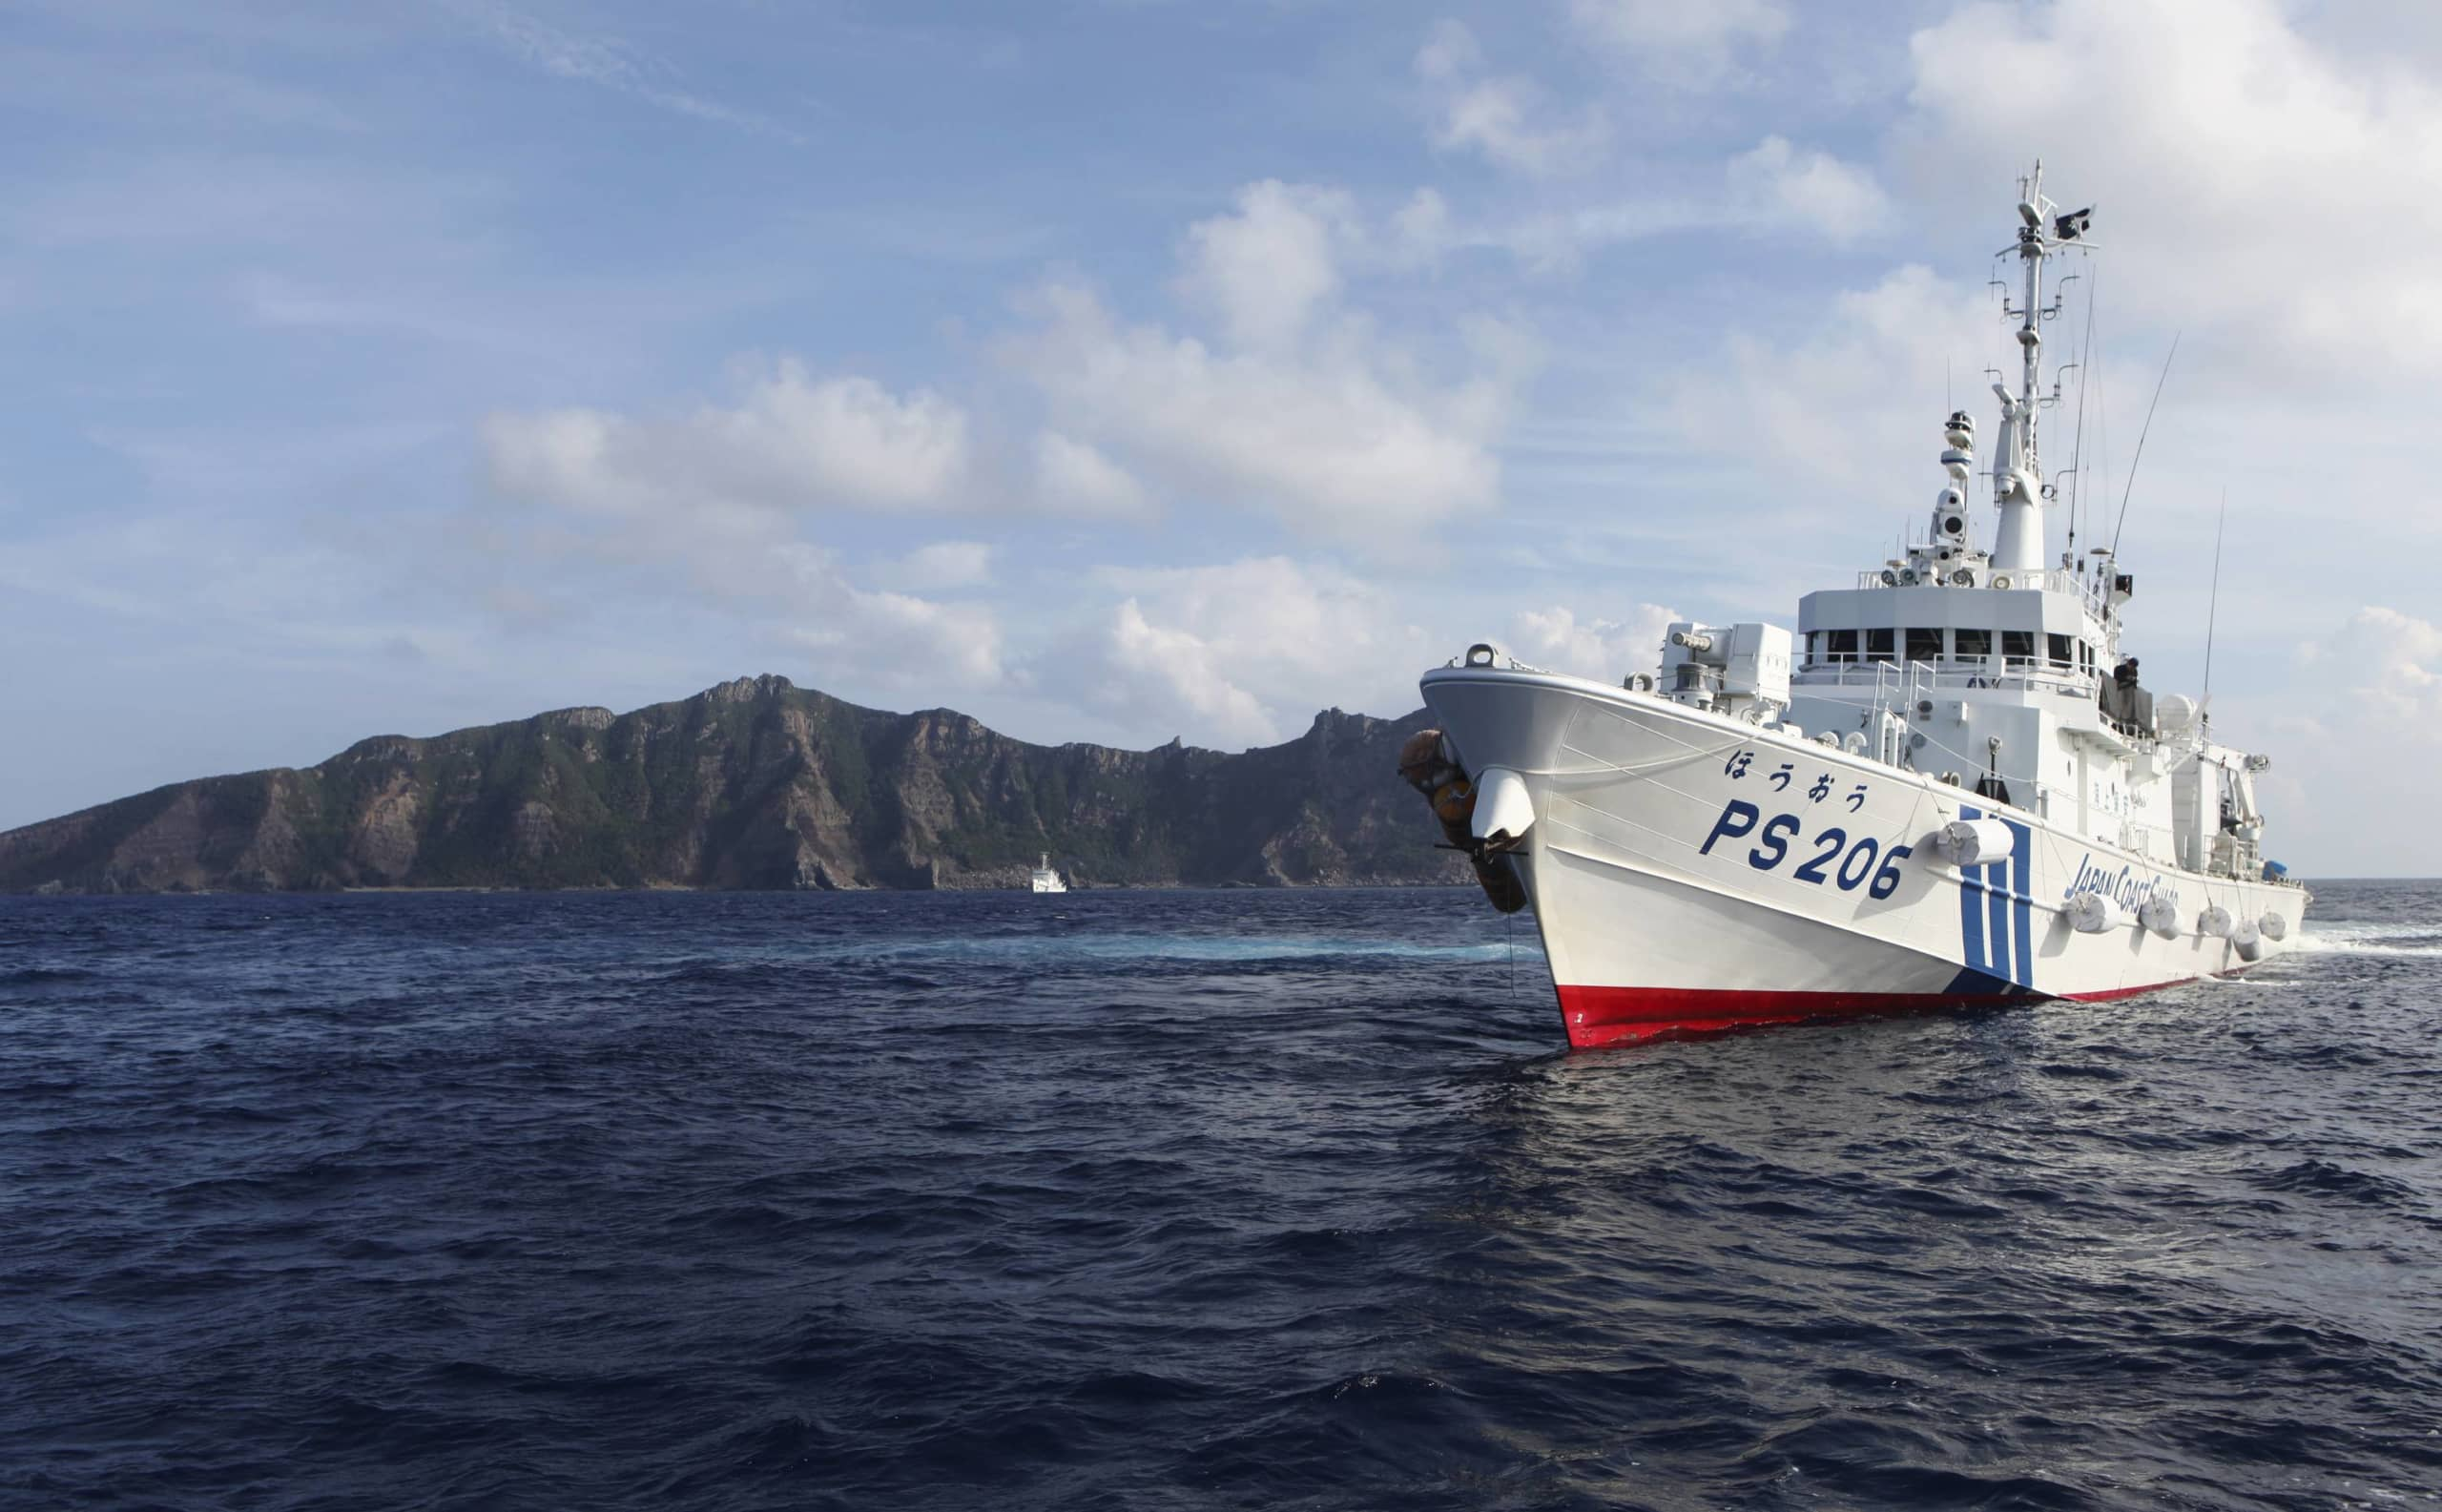 Deception, concealment and surprise are central to China's strategy to win without fighting. Japan's purely defensive actions have emboldened it to step up incursions into the waters around the Senkaku Islands. | REUTERS